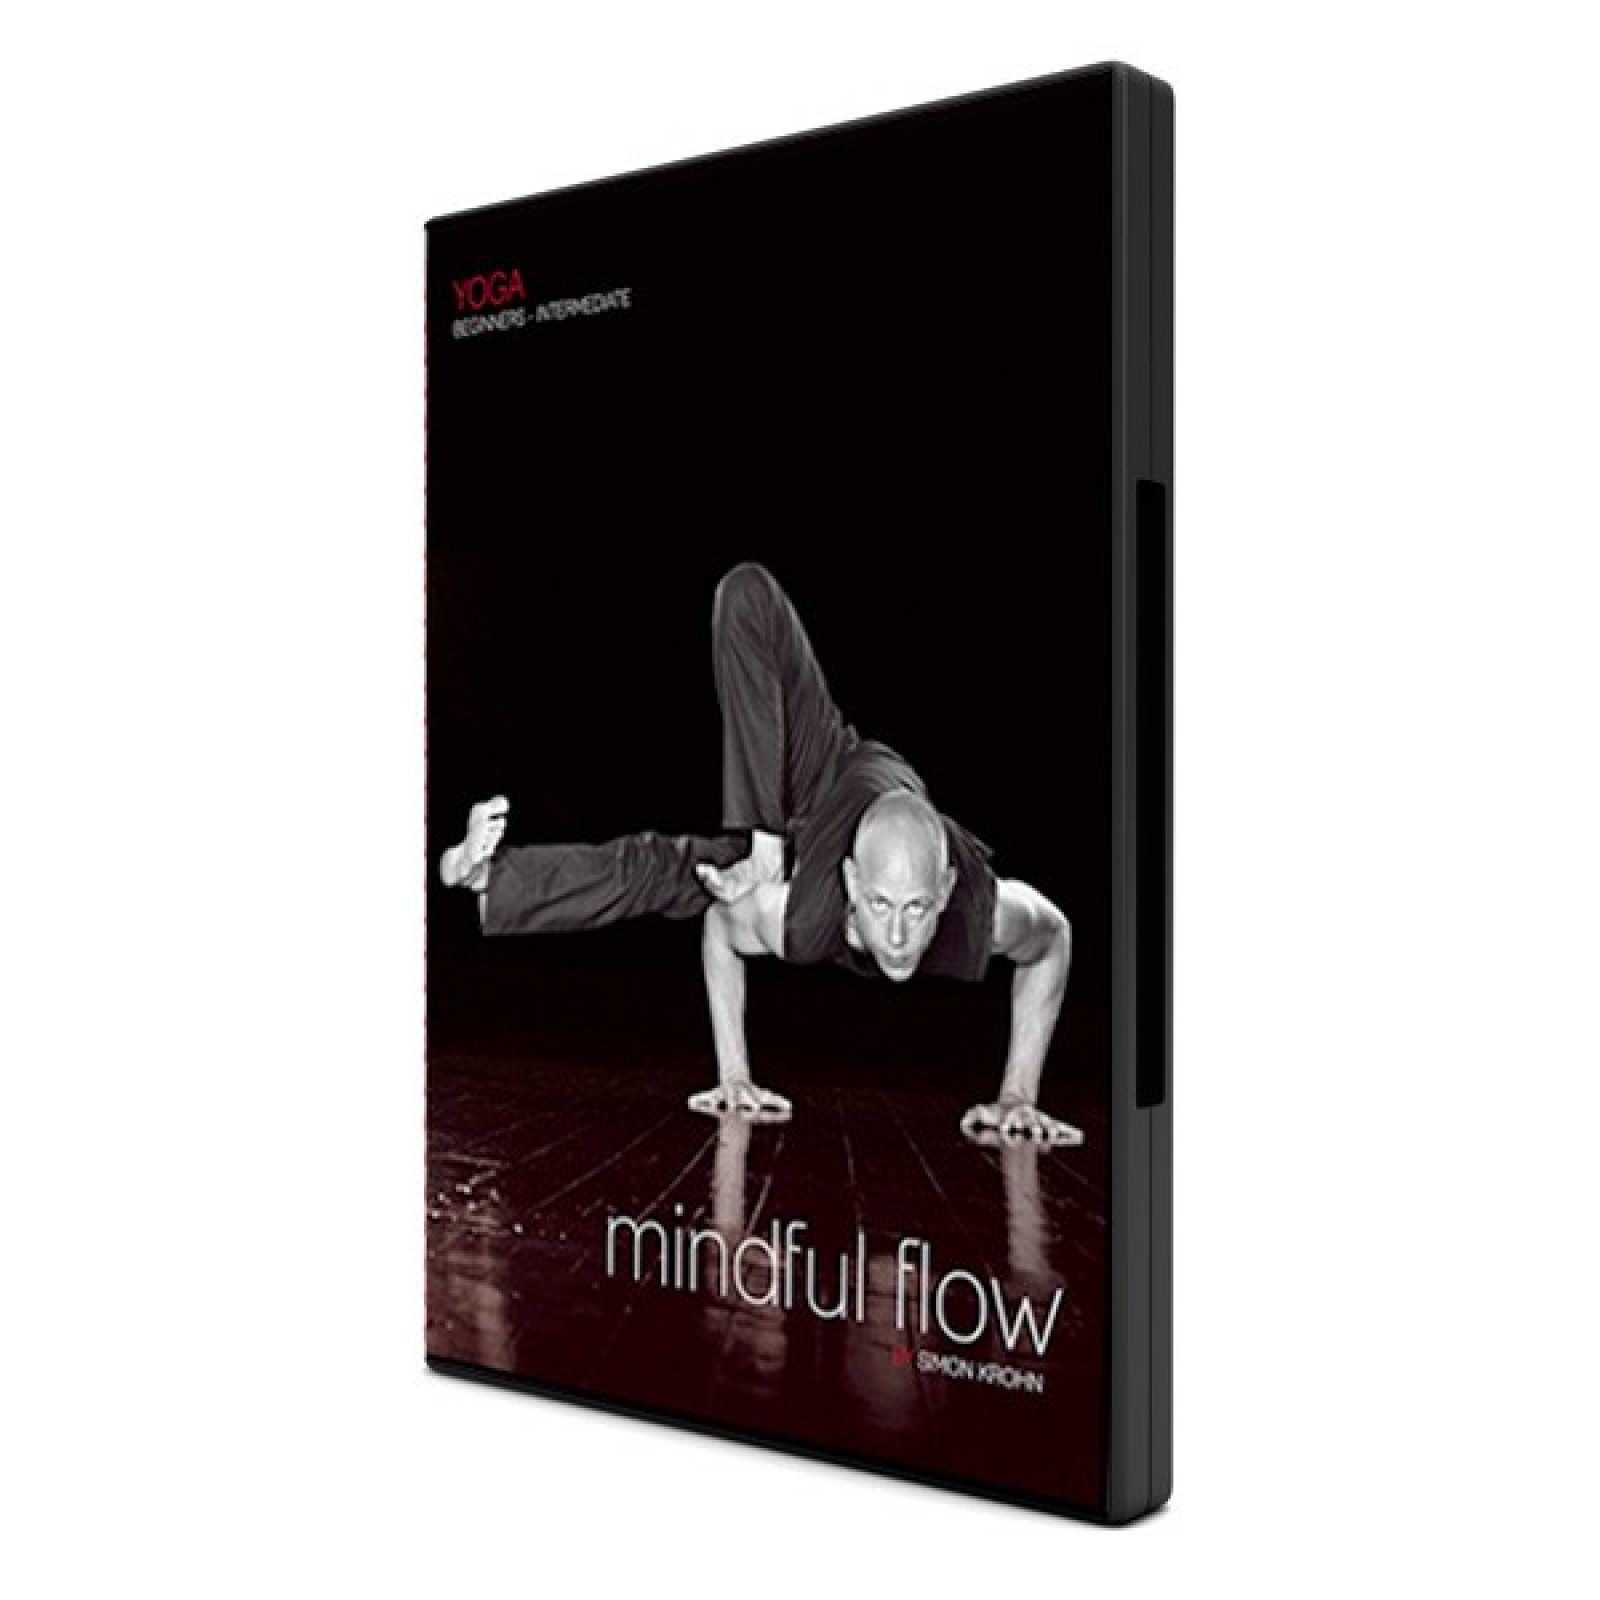 Yoga, Mindful Flow by Simon Krohn (DVD)